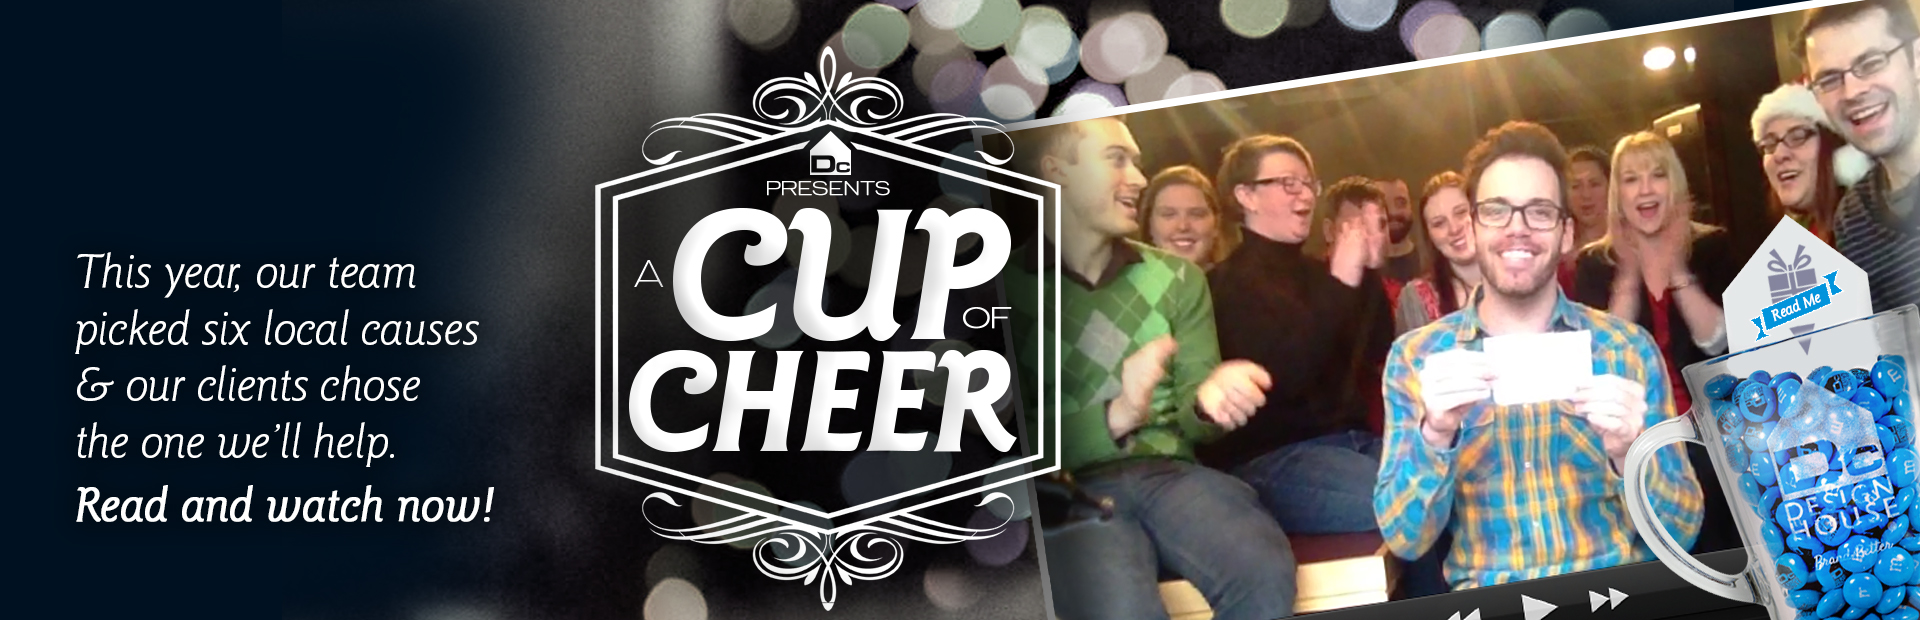 Cup of Cheer: The Big Reveal